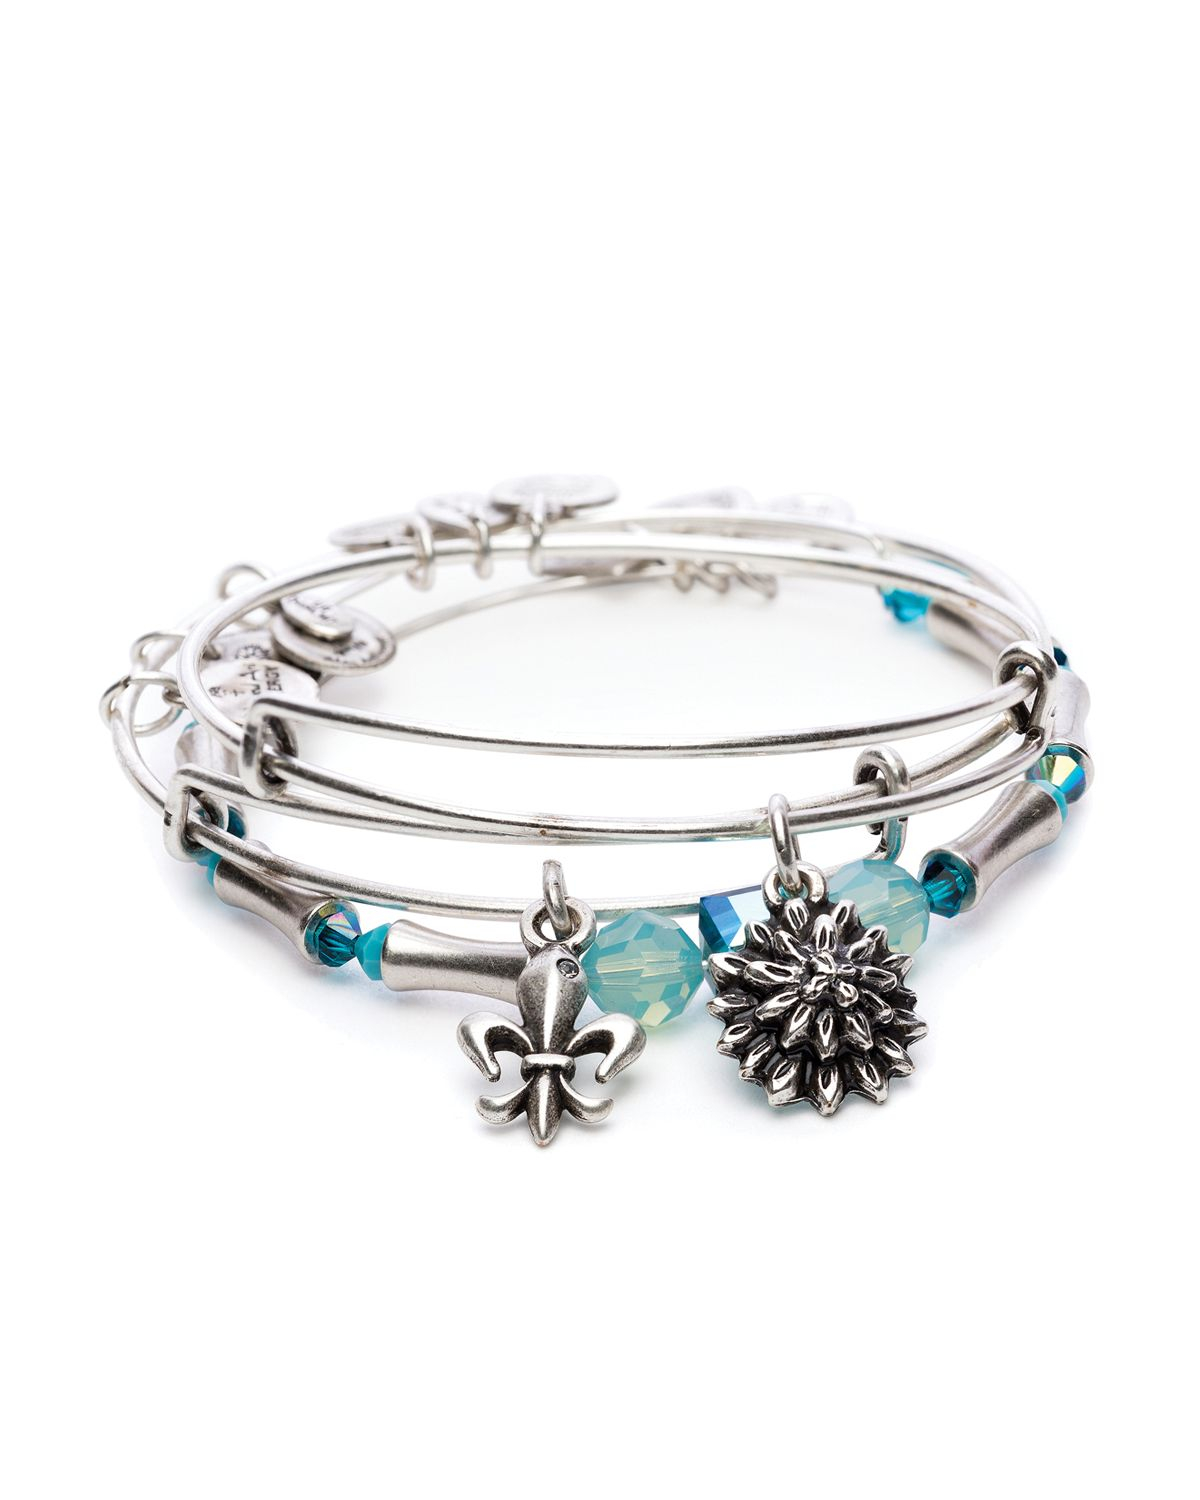 Loyalty - Happiness - Infinity The heart is at the core of our spiritual and emotional center. To share your heart with another is to create an unbreakable bond of kindness, trust, and love. Share your affection and your charm with the Best Friends Bangle Set.